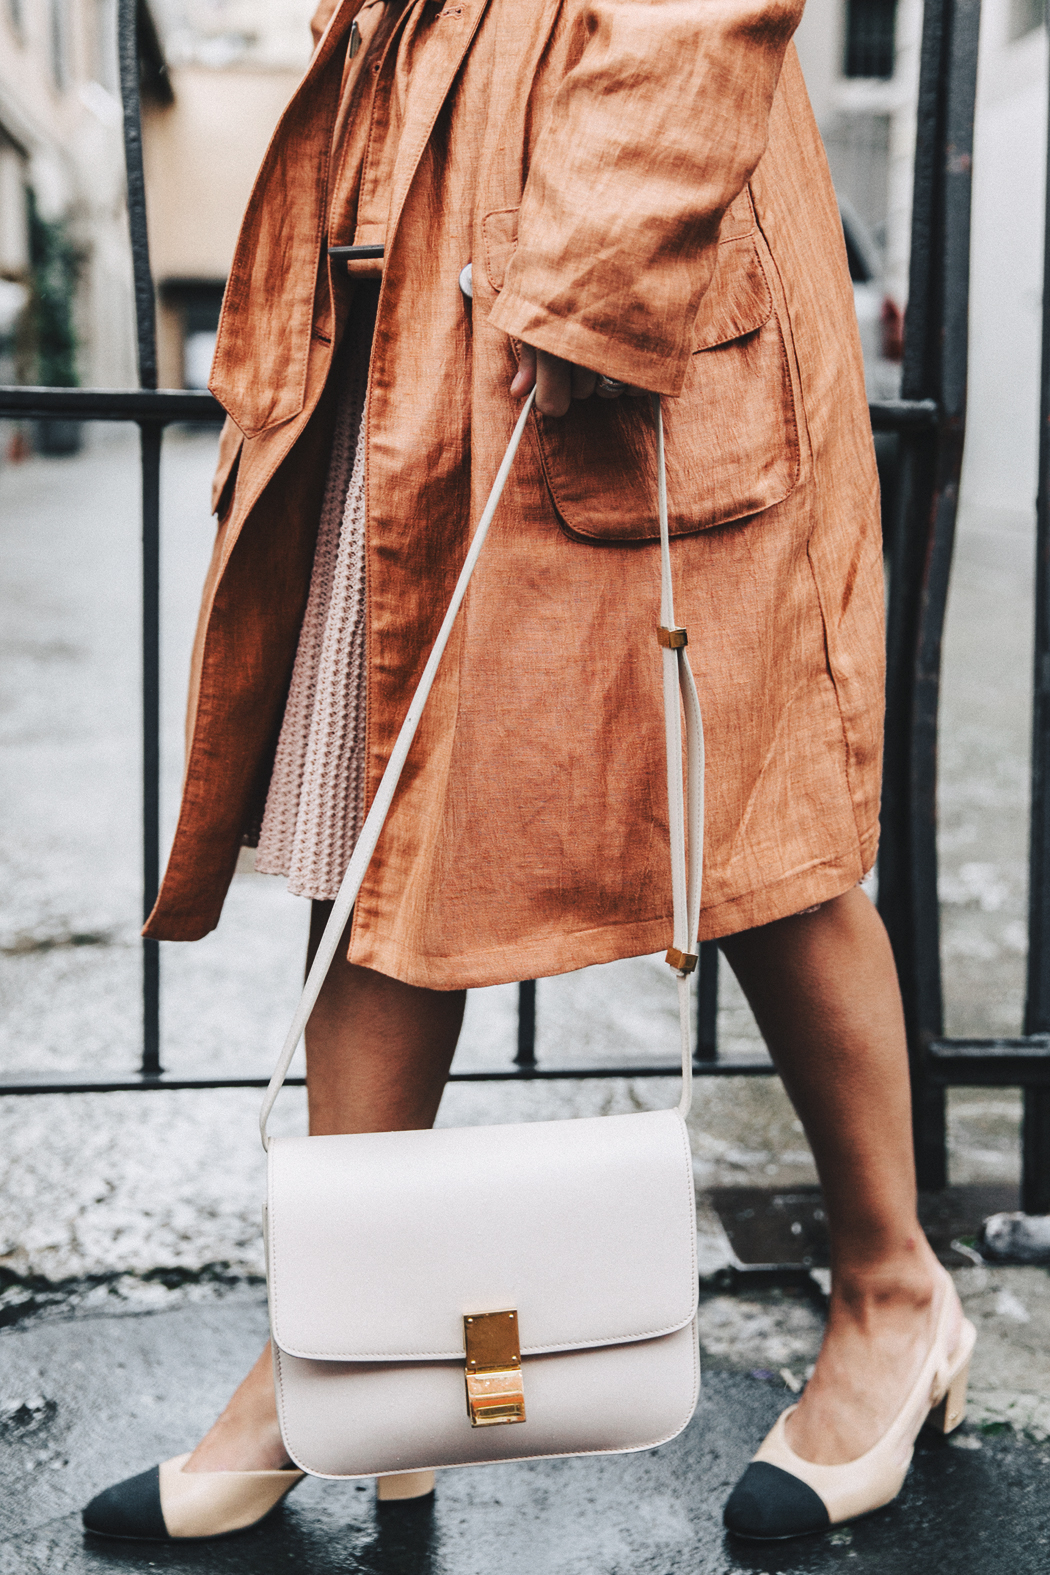 Armani-Trench_Coat-Pink_Dress-Chanel_Slingbacks-Celine_Box_Bag-Outfit-Milan_Fashion_Week-Street_Style-